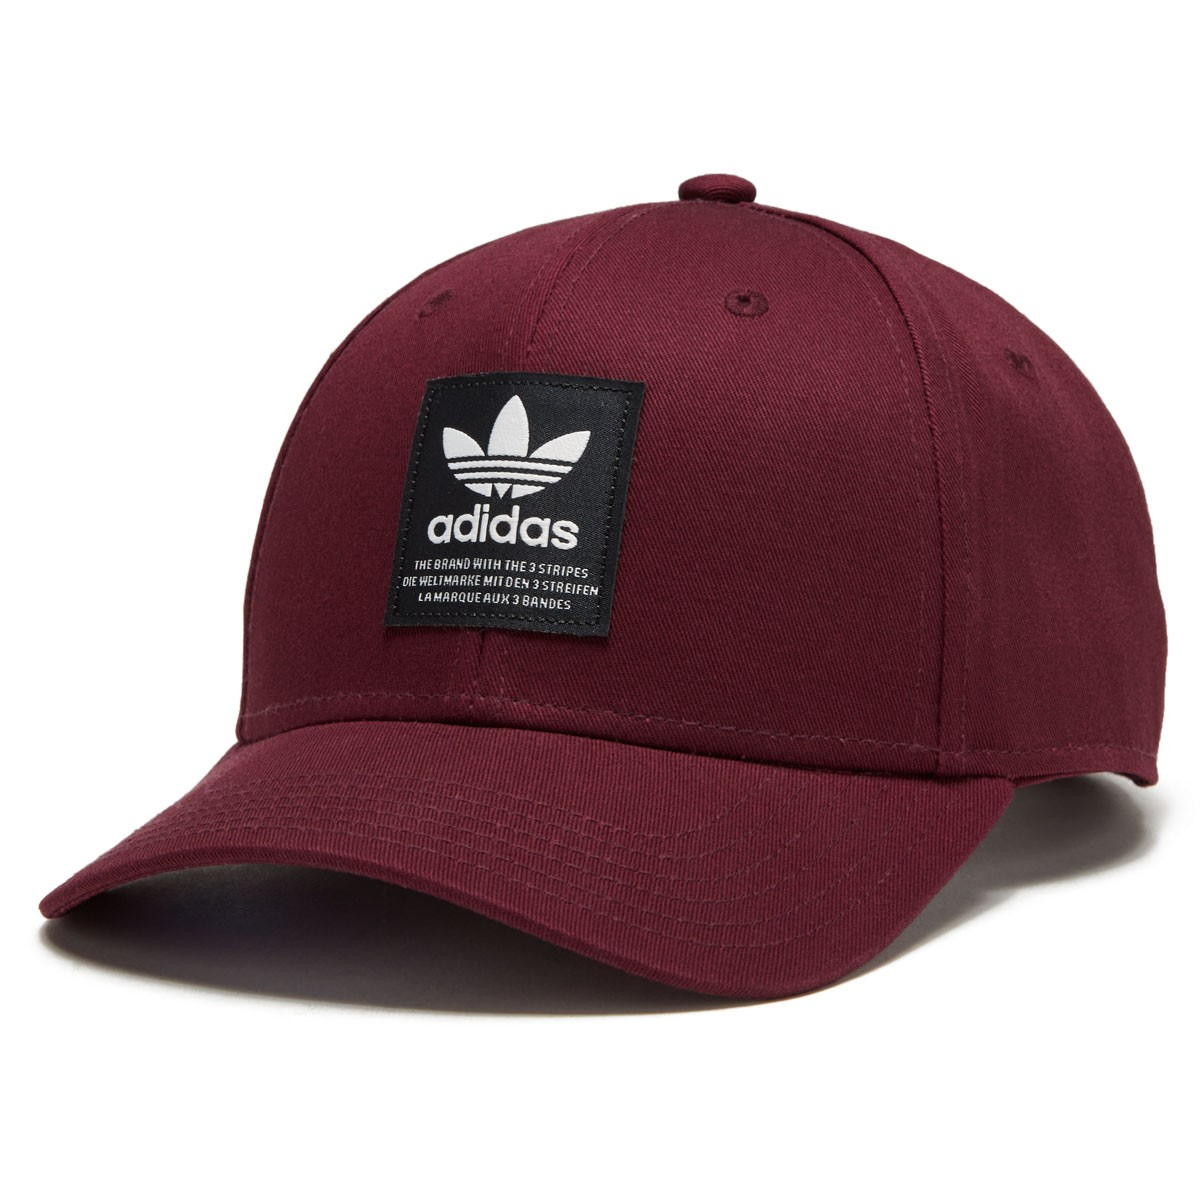 980e7c7260 Adidas Men's Originals TL Patch Snapback Hat